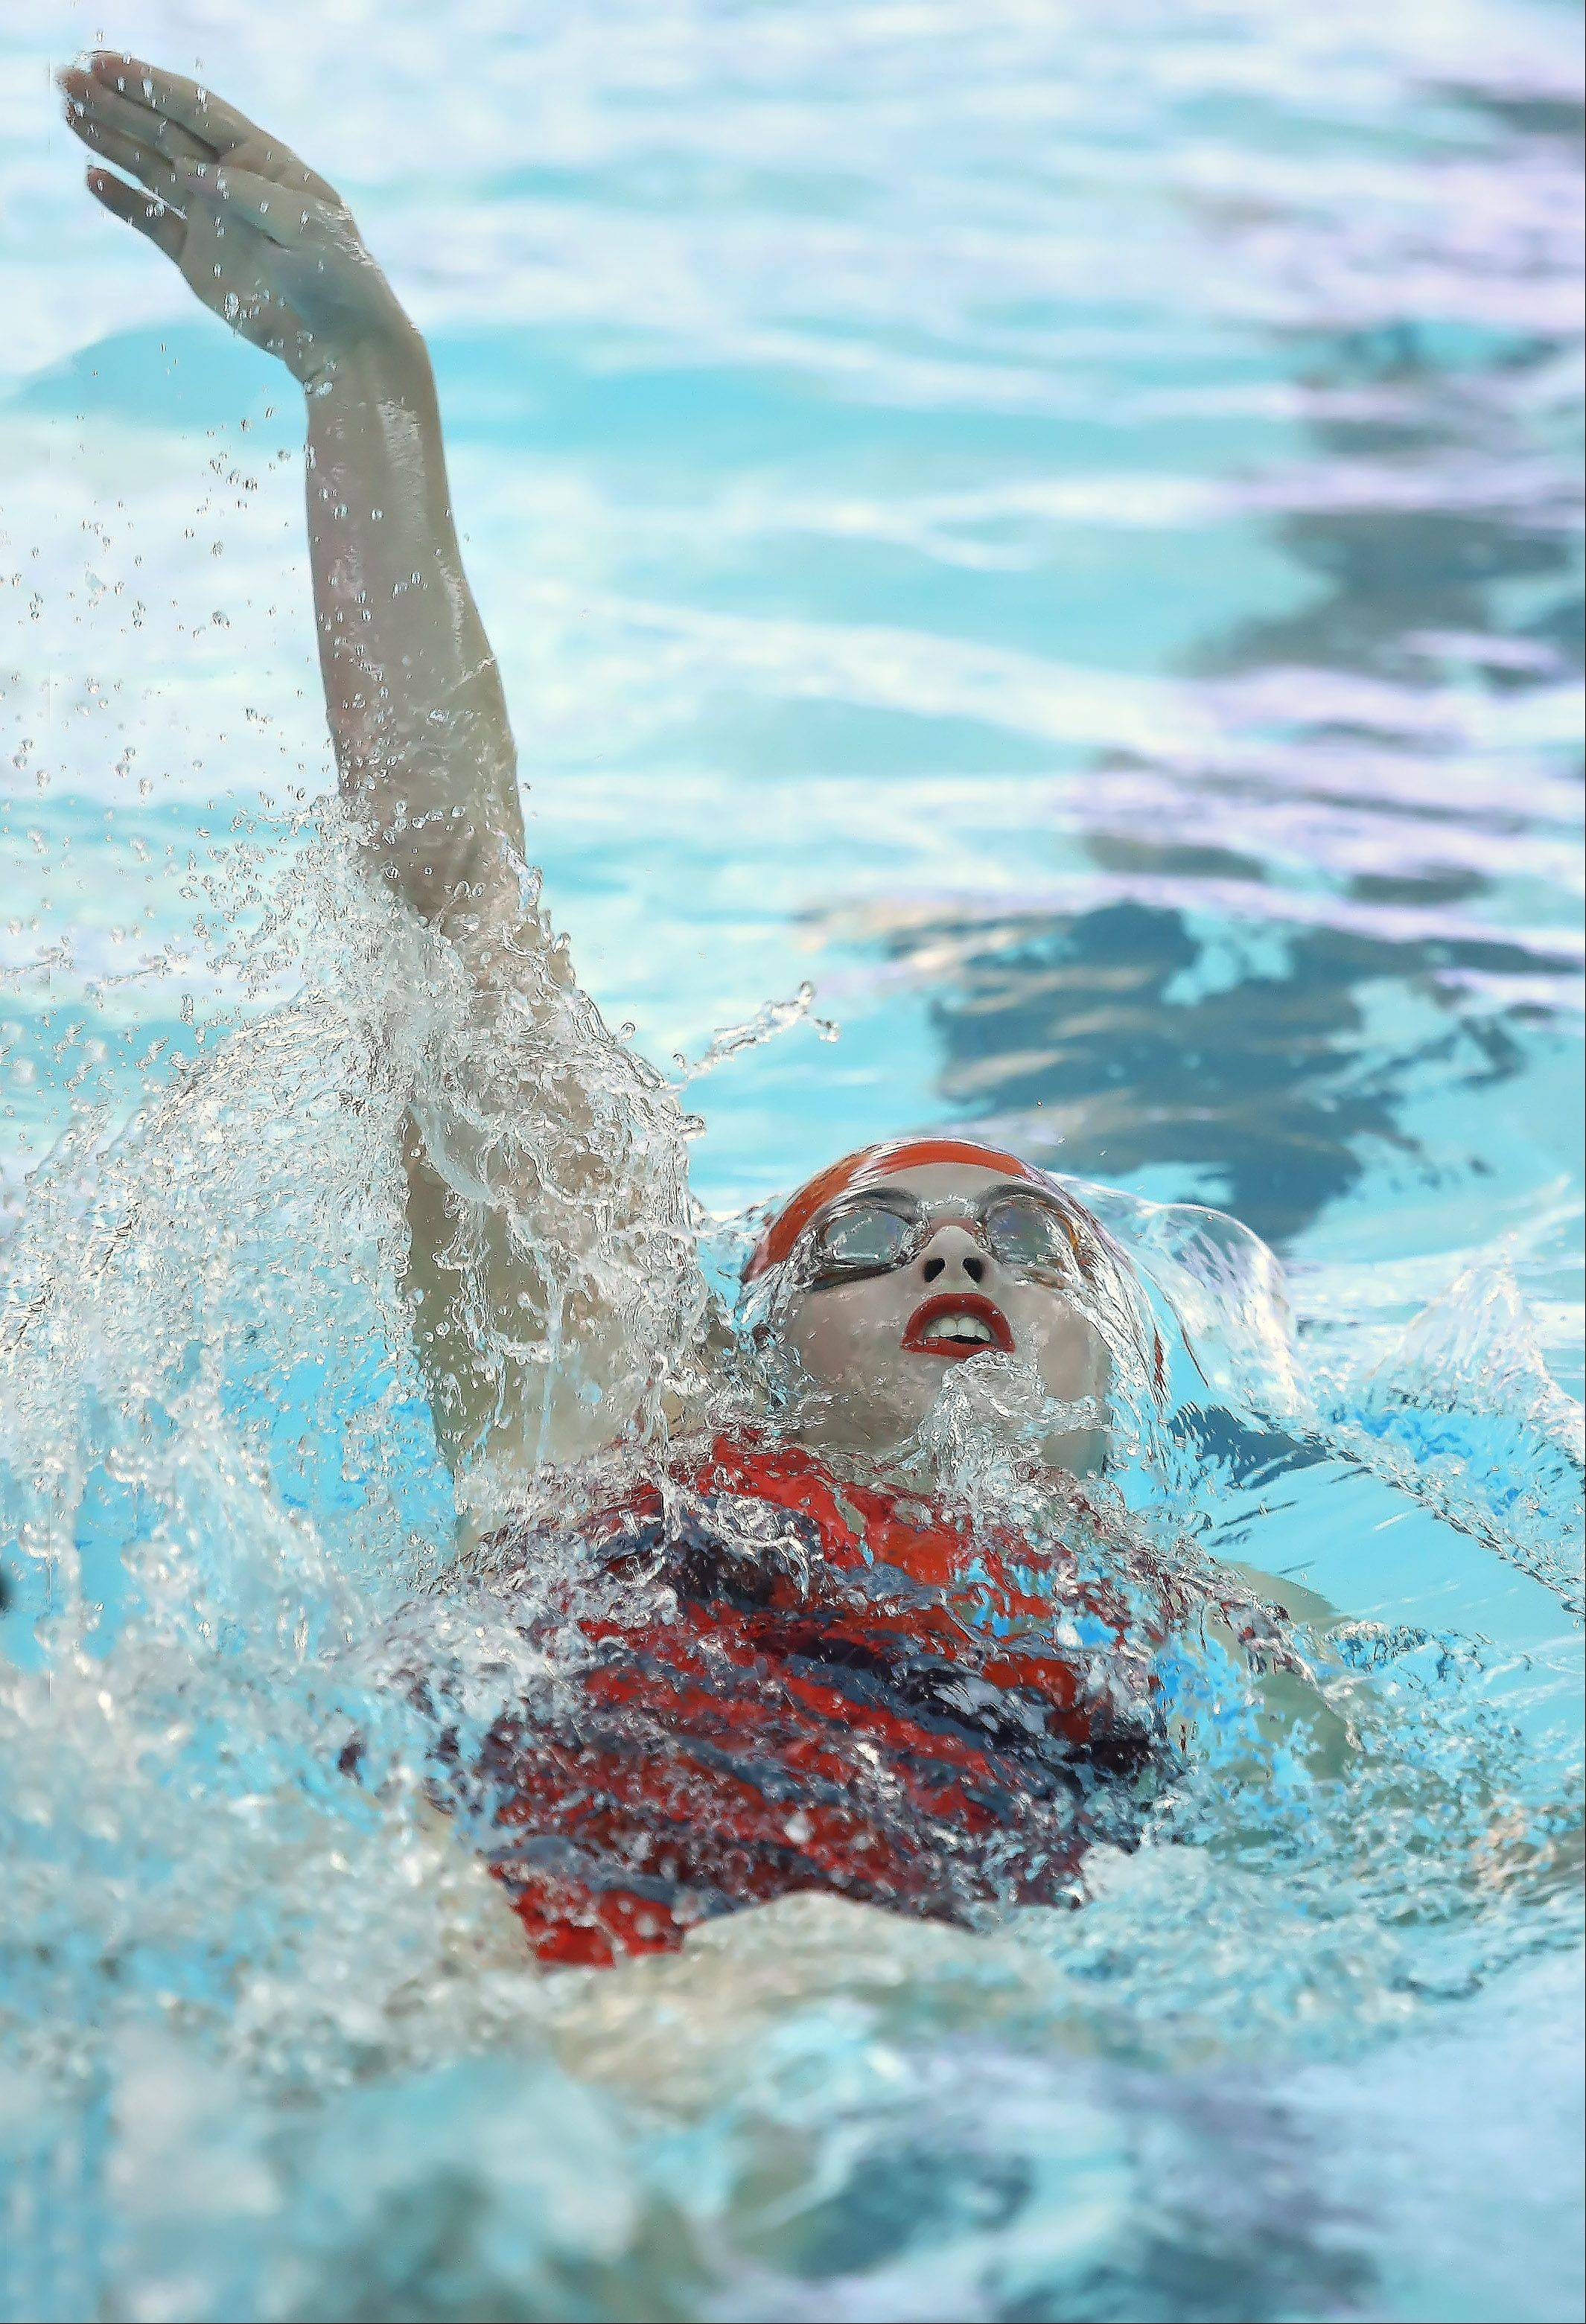 Mundelein's Jenn Kordik wins the 200-yard individual medley during Thursday's meet at Libertyville.